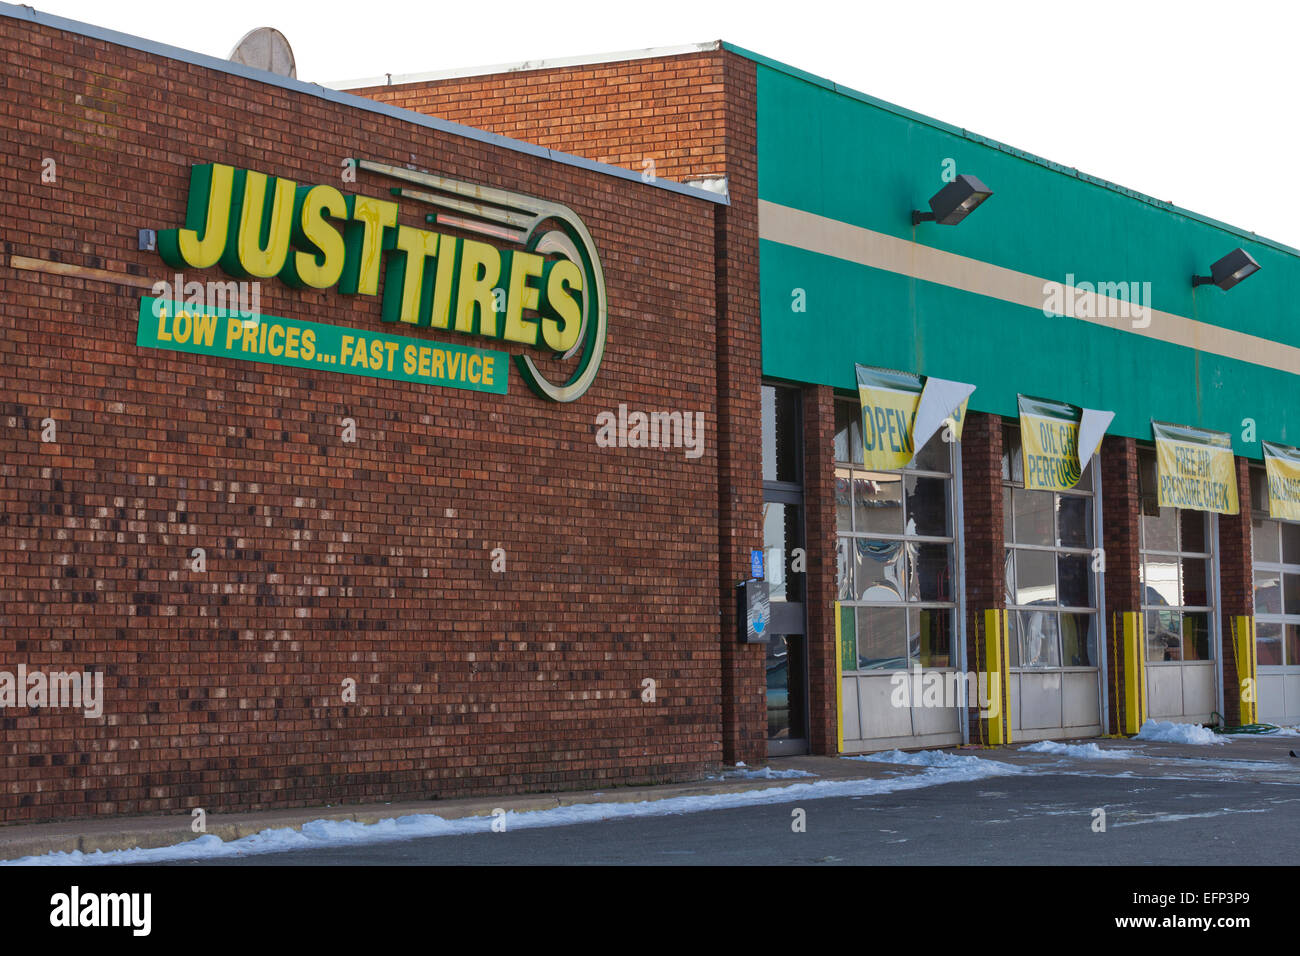 Just Tires storefront - USA - Stock Image